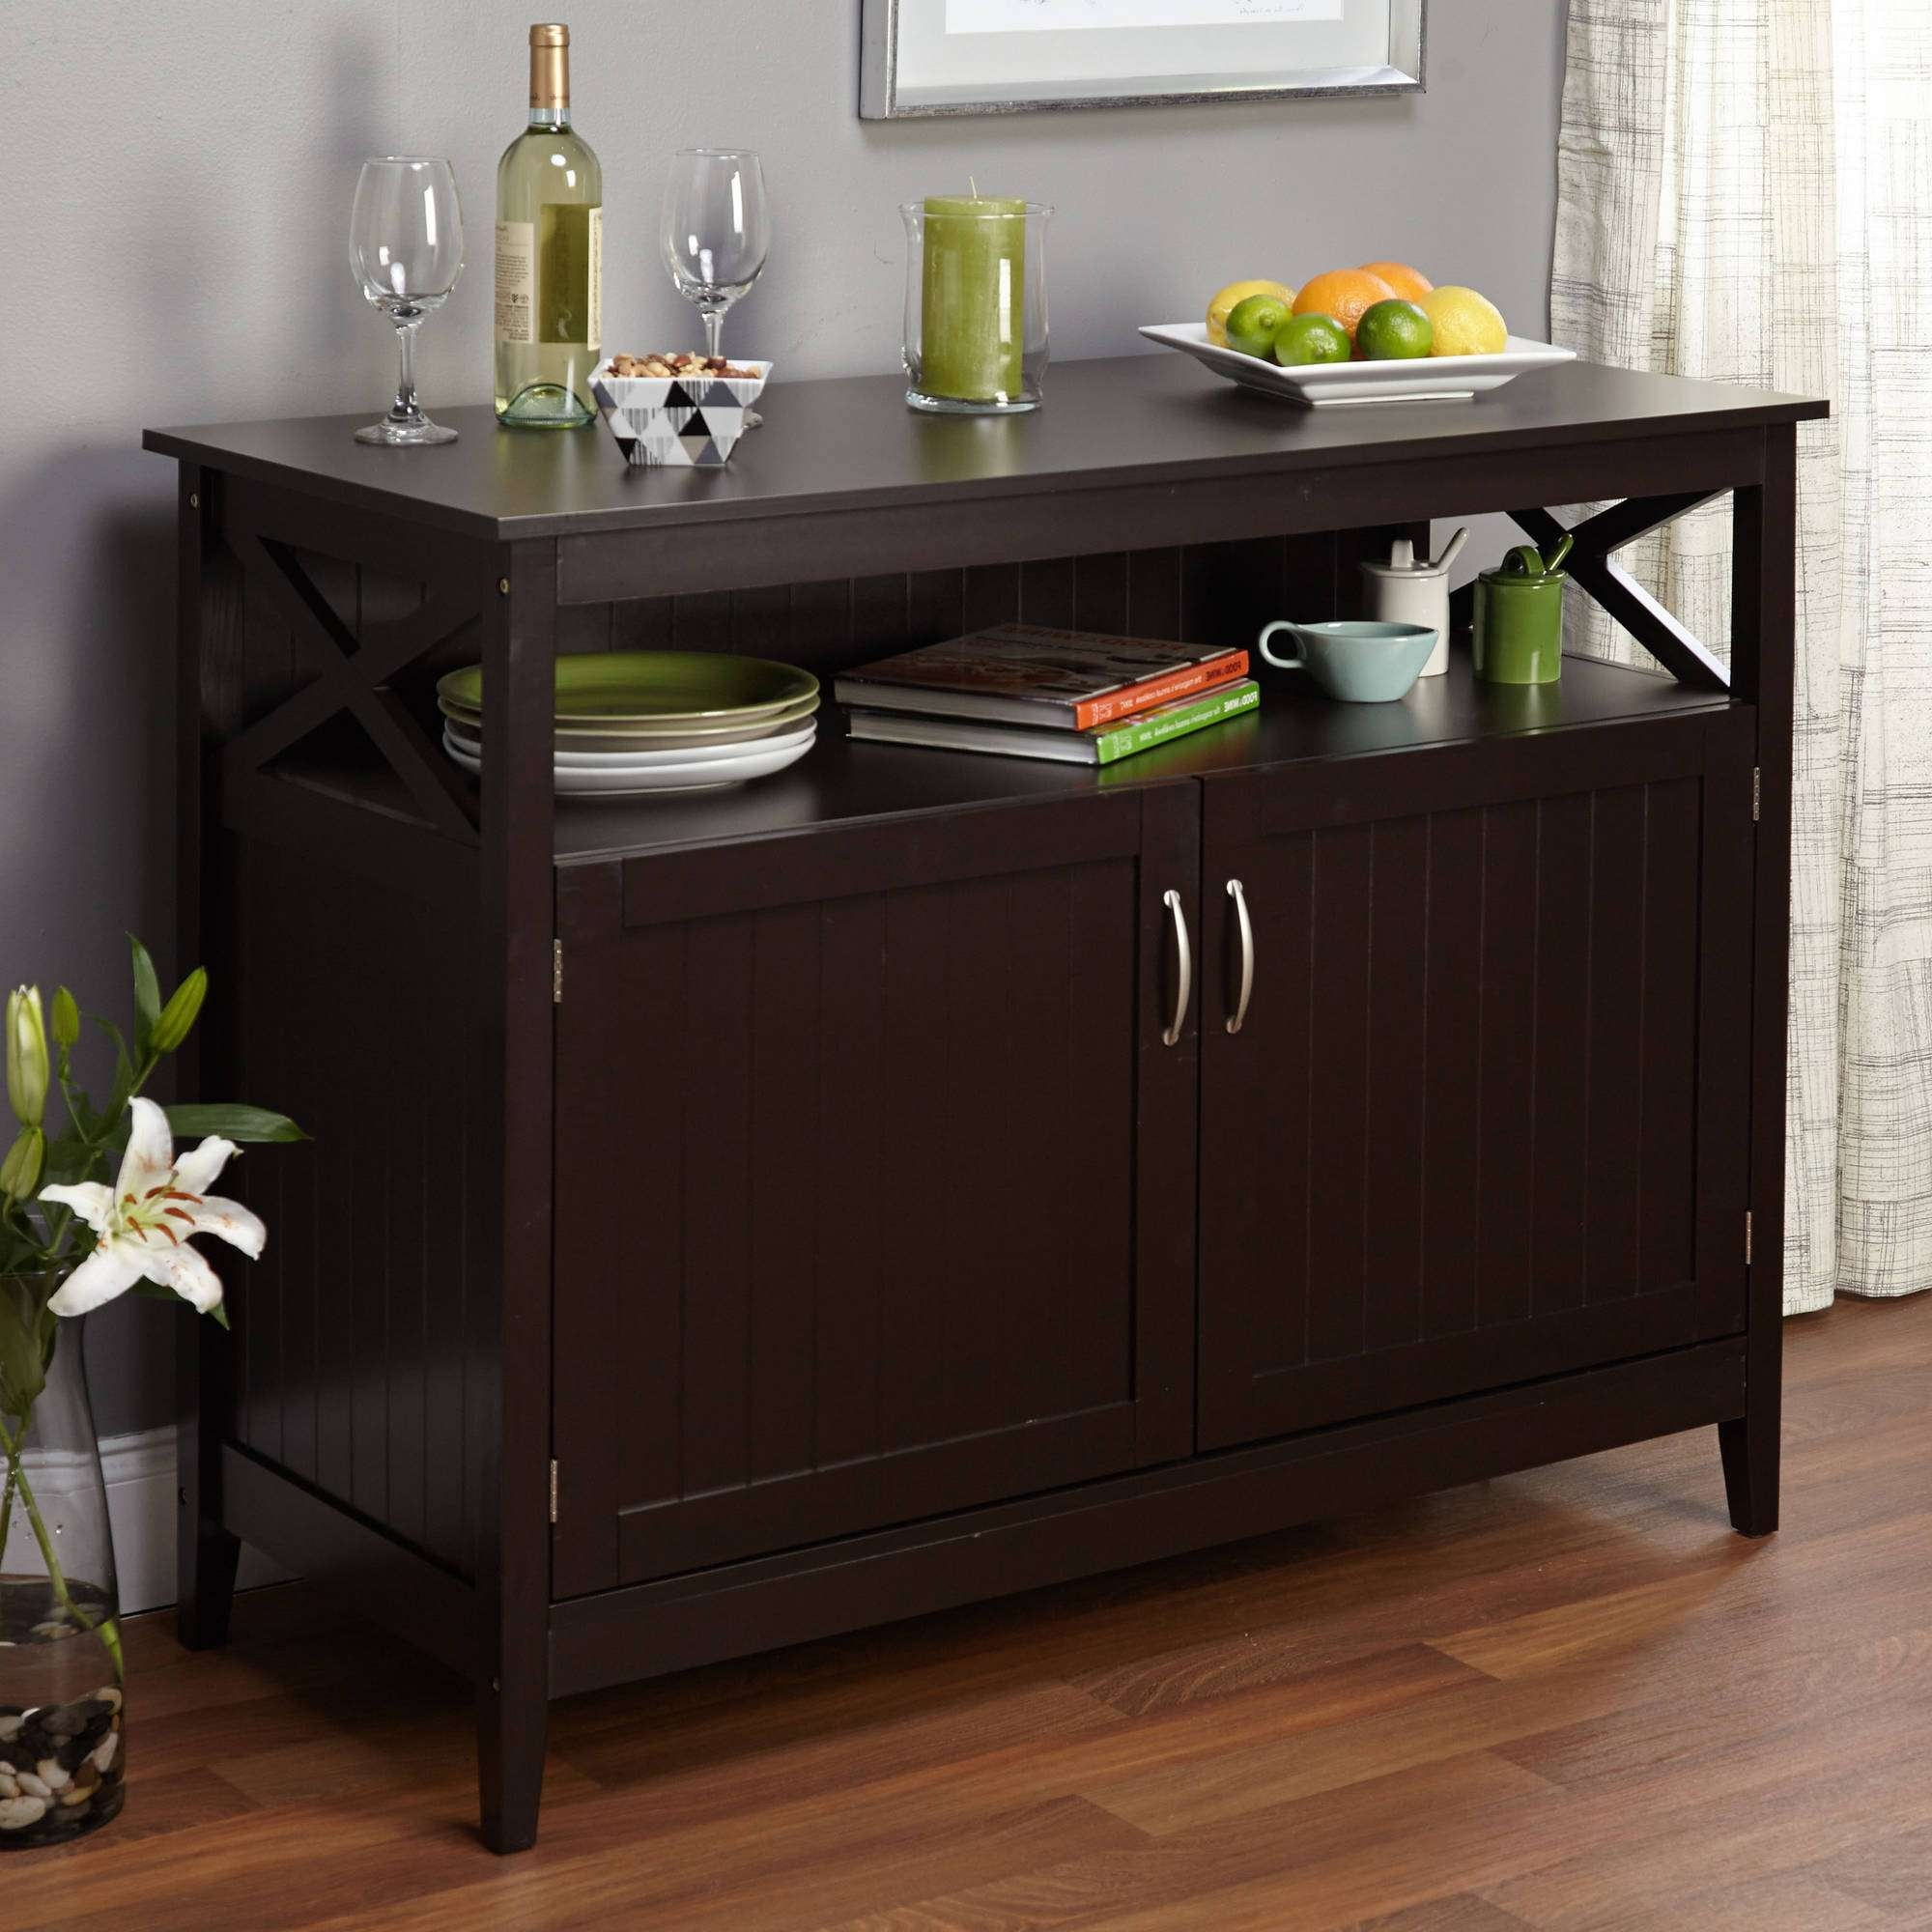 Dining Room : Fabulous Dining Sideboards And Buffets Buffet – Igf Usa With Regard To Small Dining Room Sideboards (View 18 of 20)